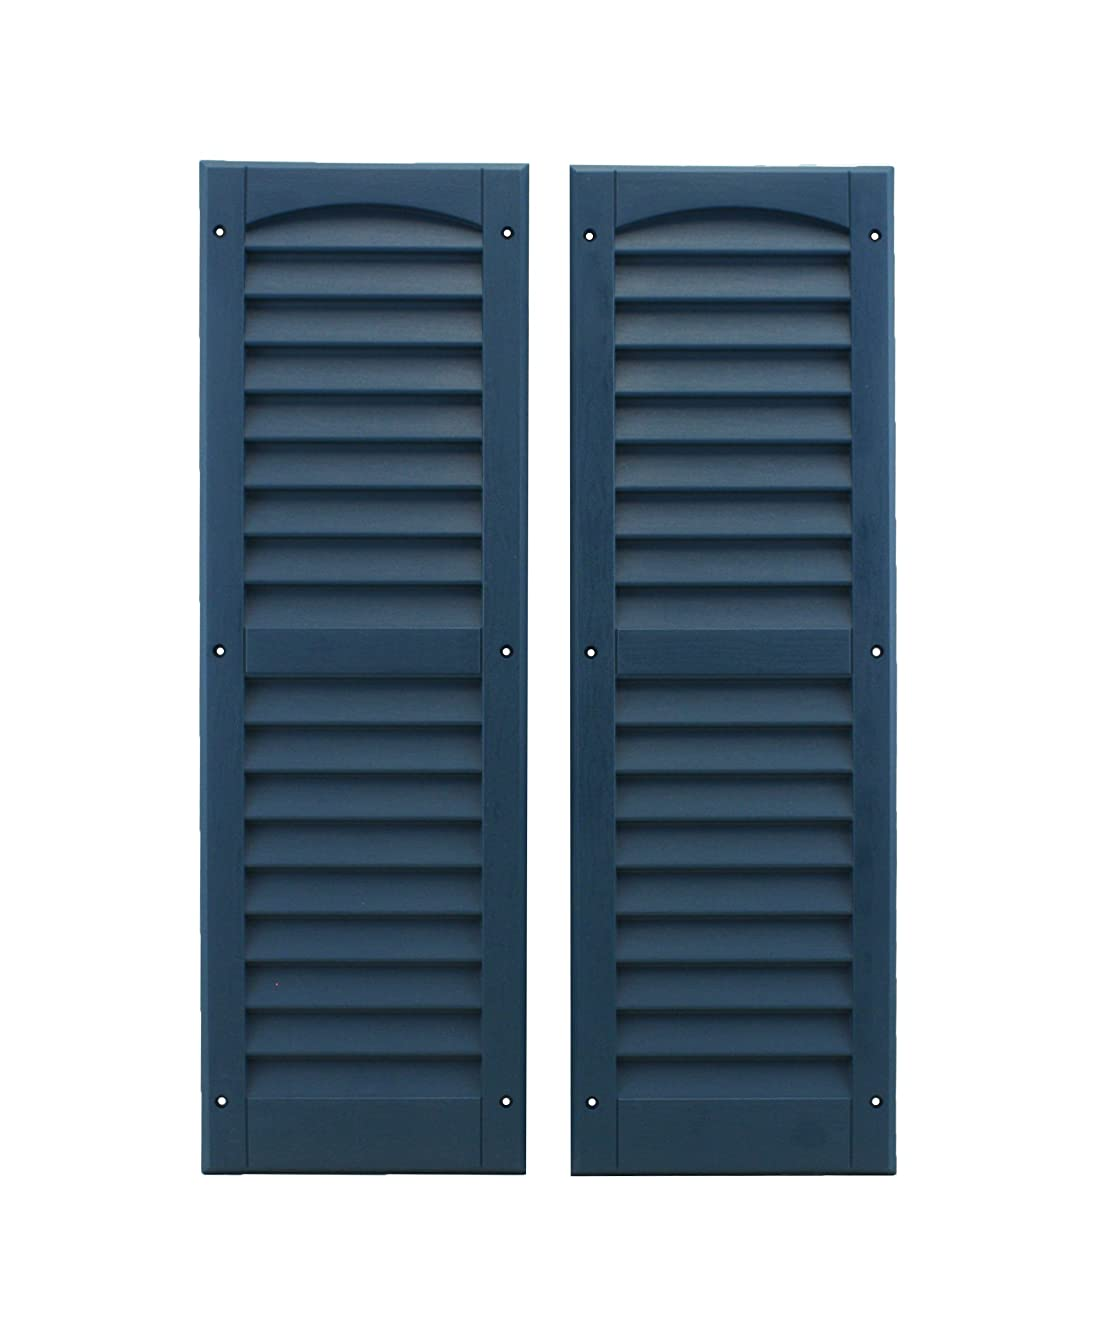 Louvered Shed Shutter or Playhouse Shutter, Blue 9